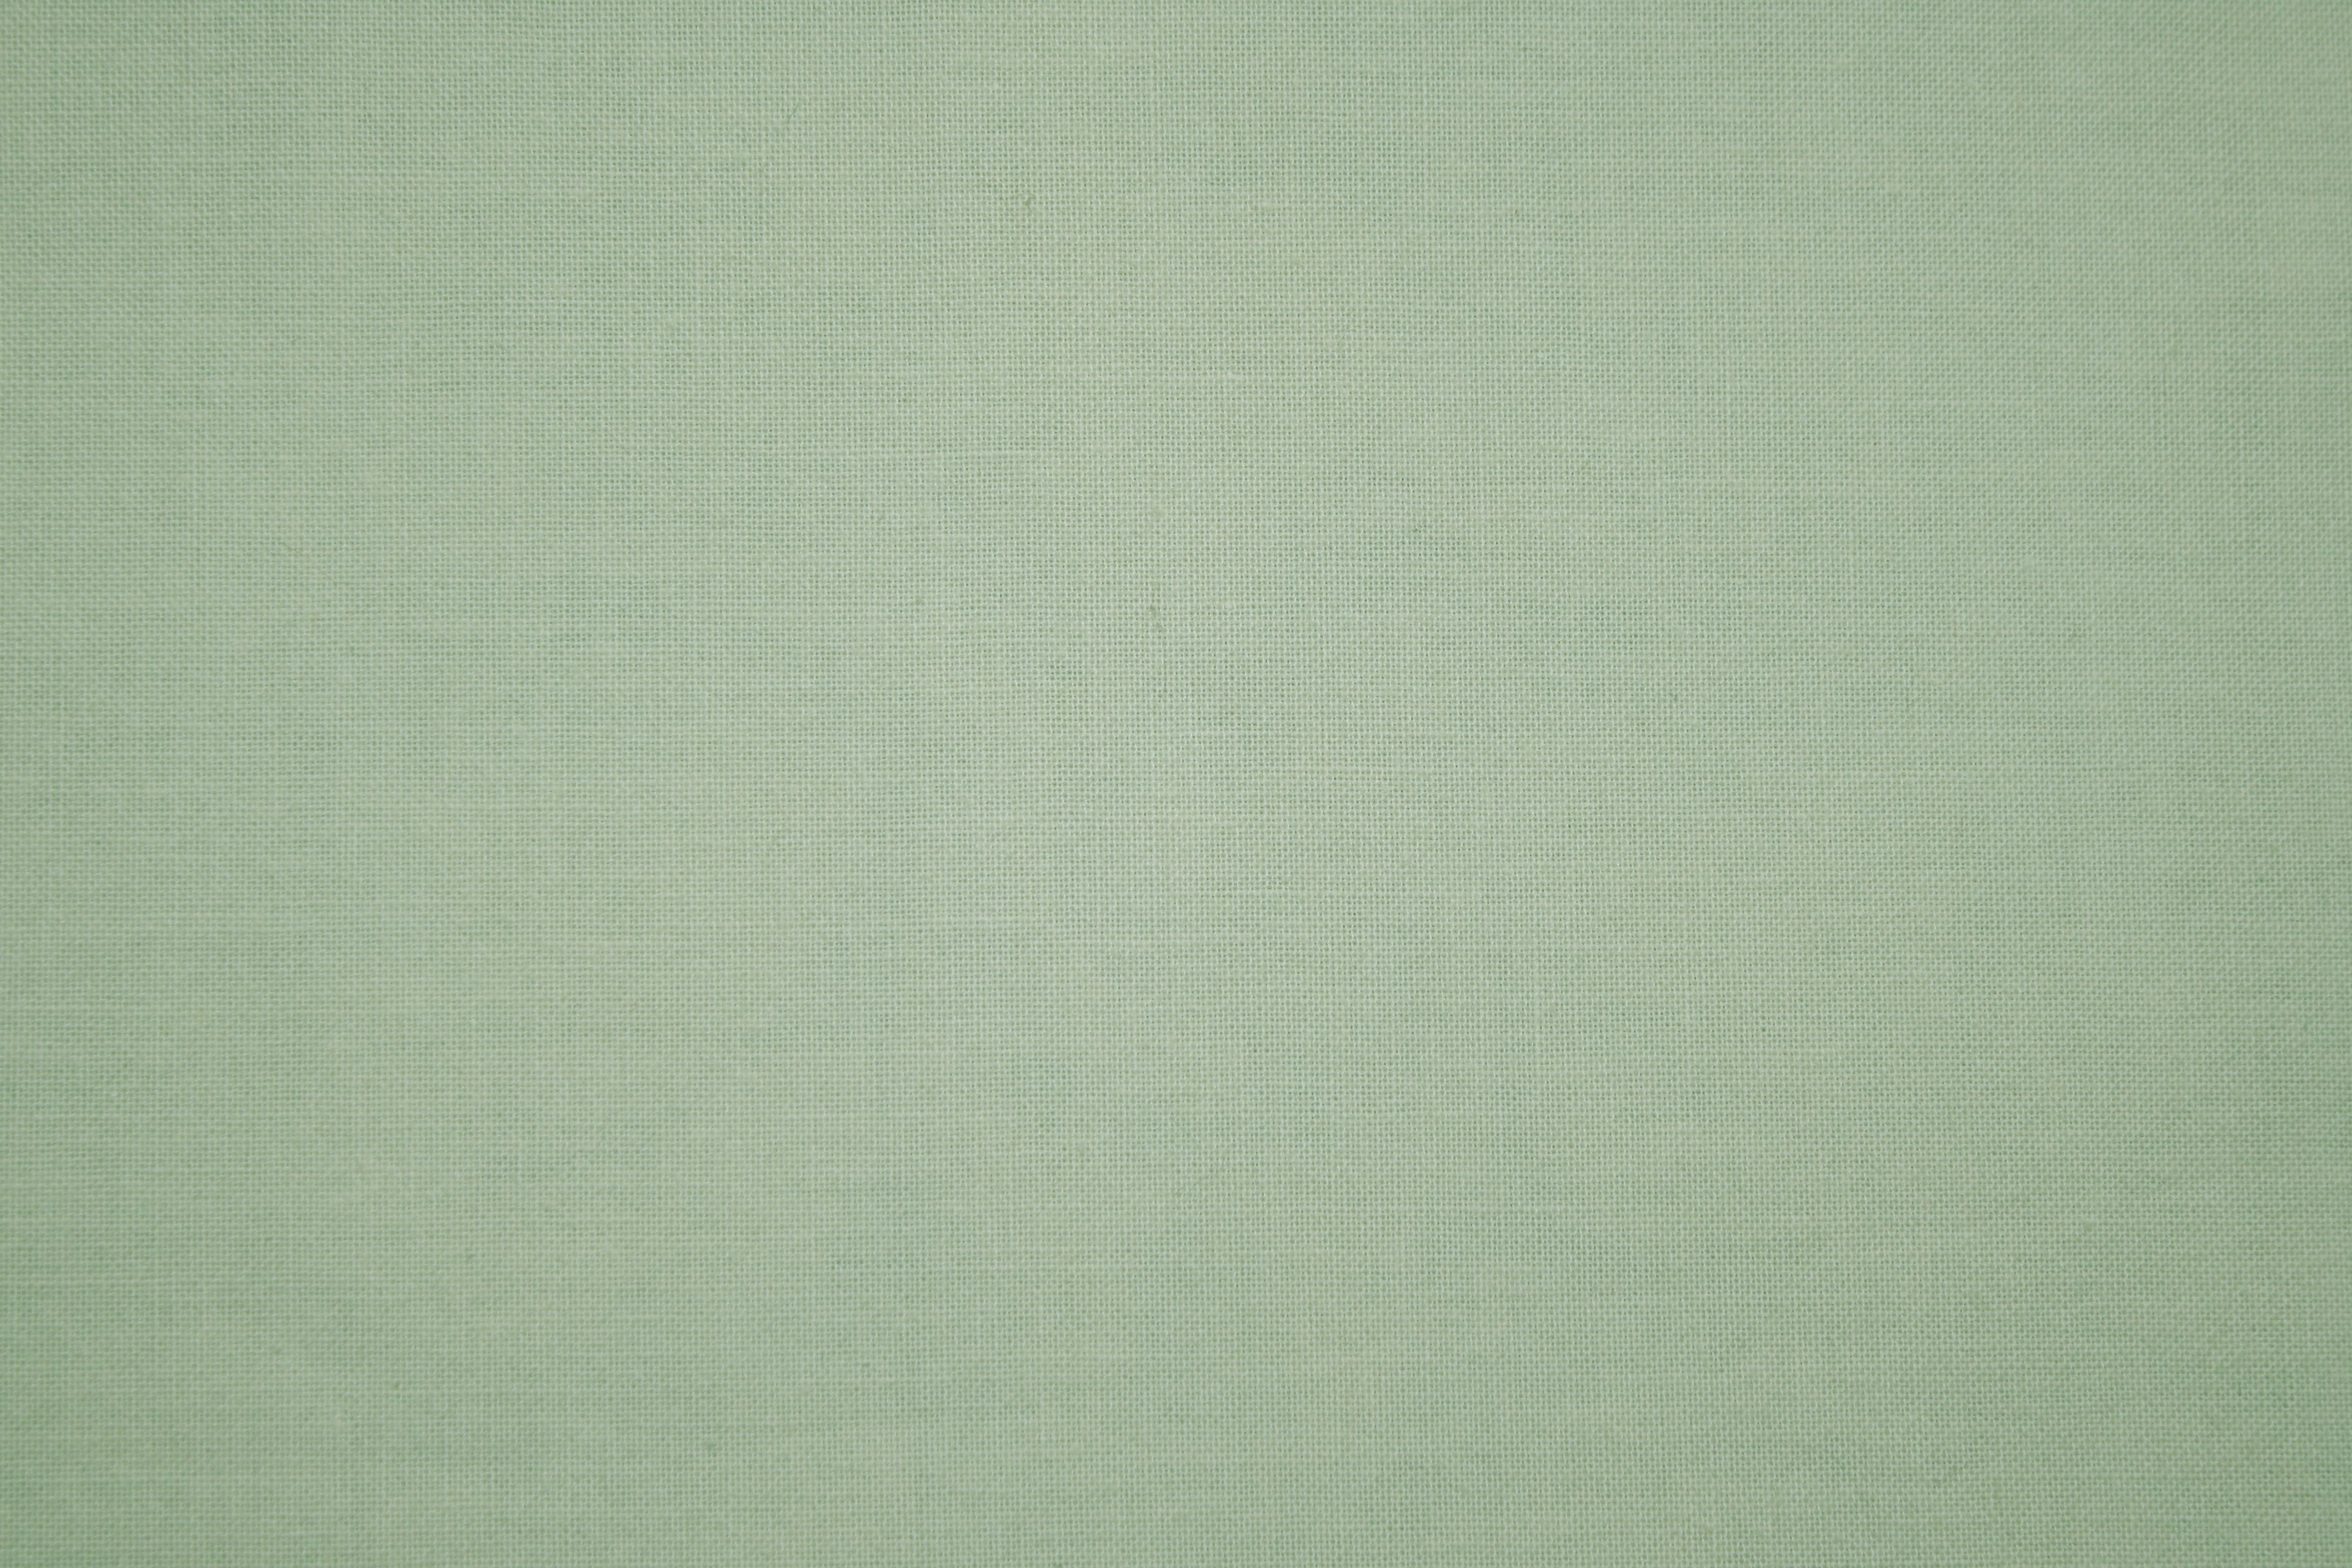 Sage Green Canvas Fabric Texture Picture Free Photograph